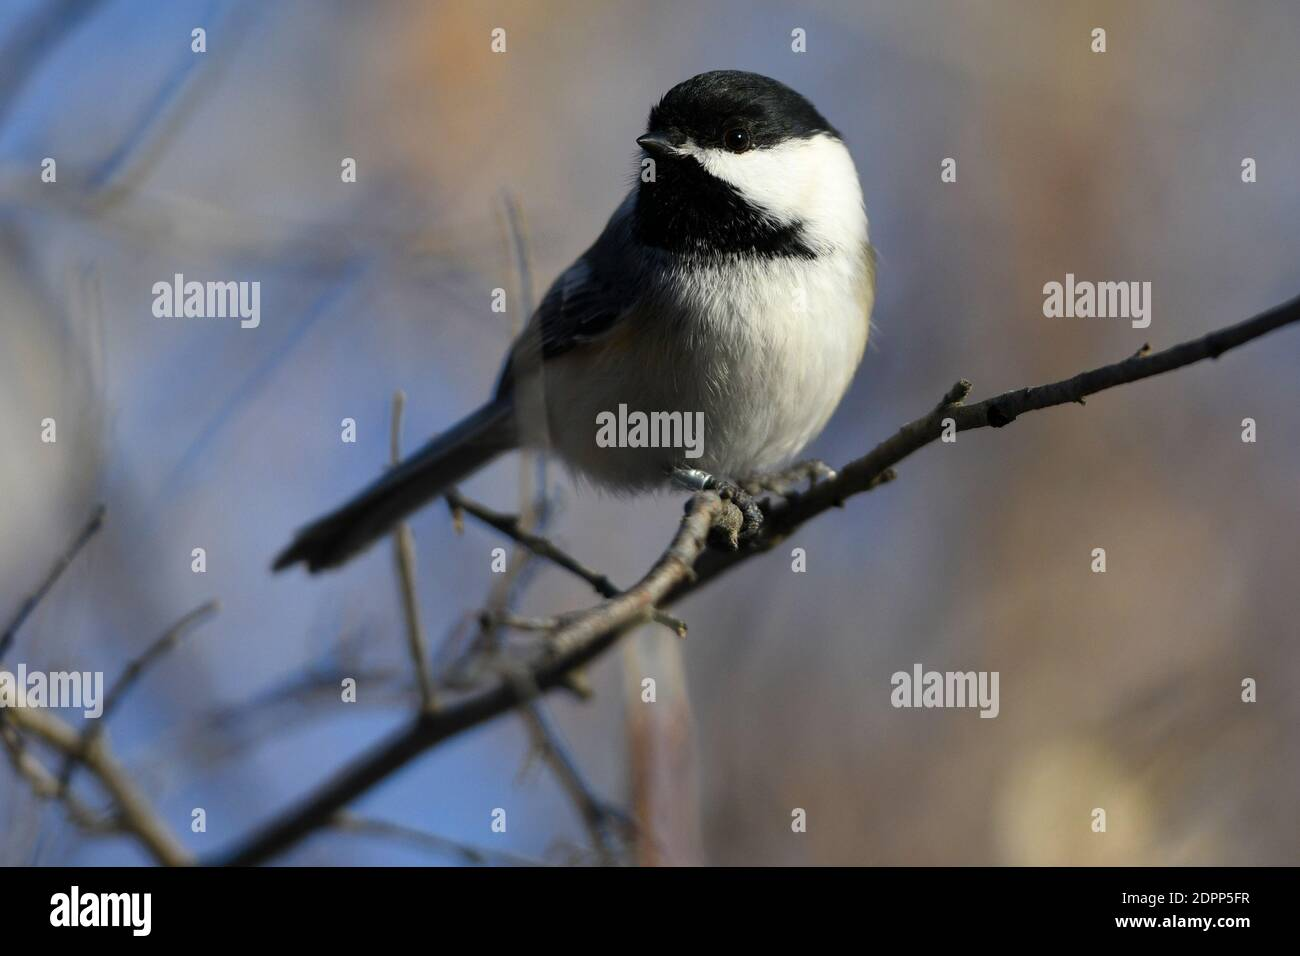 Calgary, Alberta, Canada. 19th Dec, 2020. A Black Capped Chickadee perches on a branch at the Inglewood Bird Sanctuary in Calgary, Alberta. The songbird is found across the northern United States and most of Canada, and is the state bird of Maine and Massachusetts. Credit: Gavin John/ZUMA Wire/Alamy Live News Stock Photo